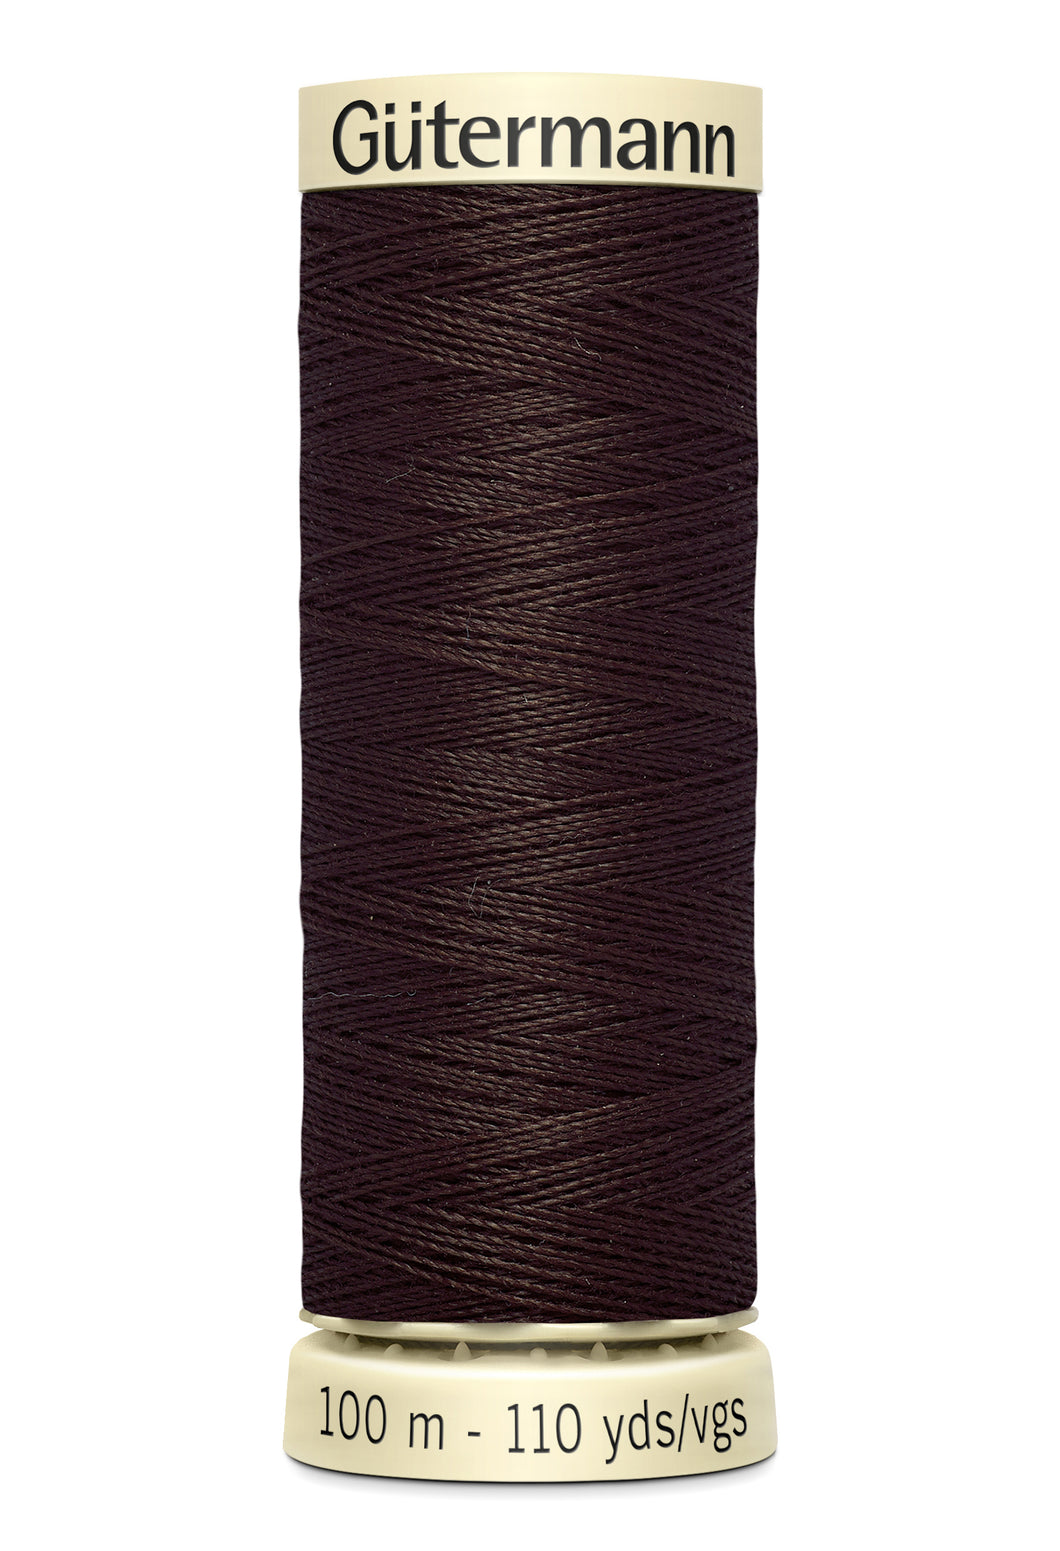 Gutermann Sew All Thread - Colour 696 Brown